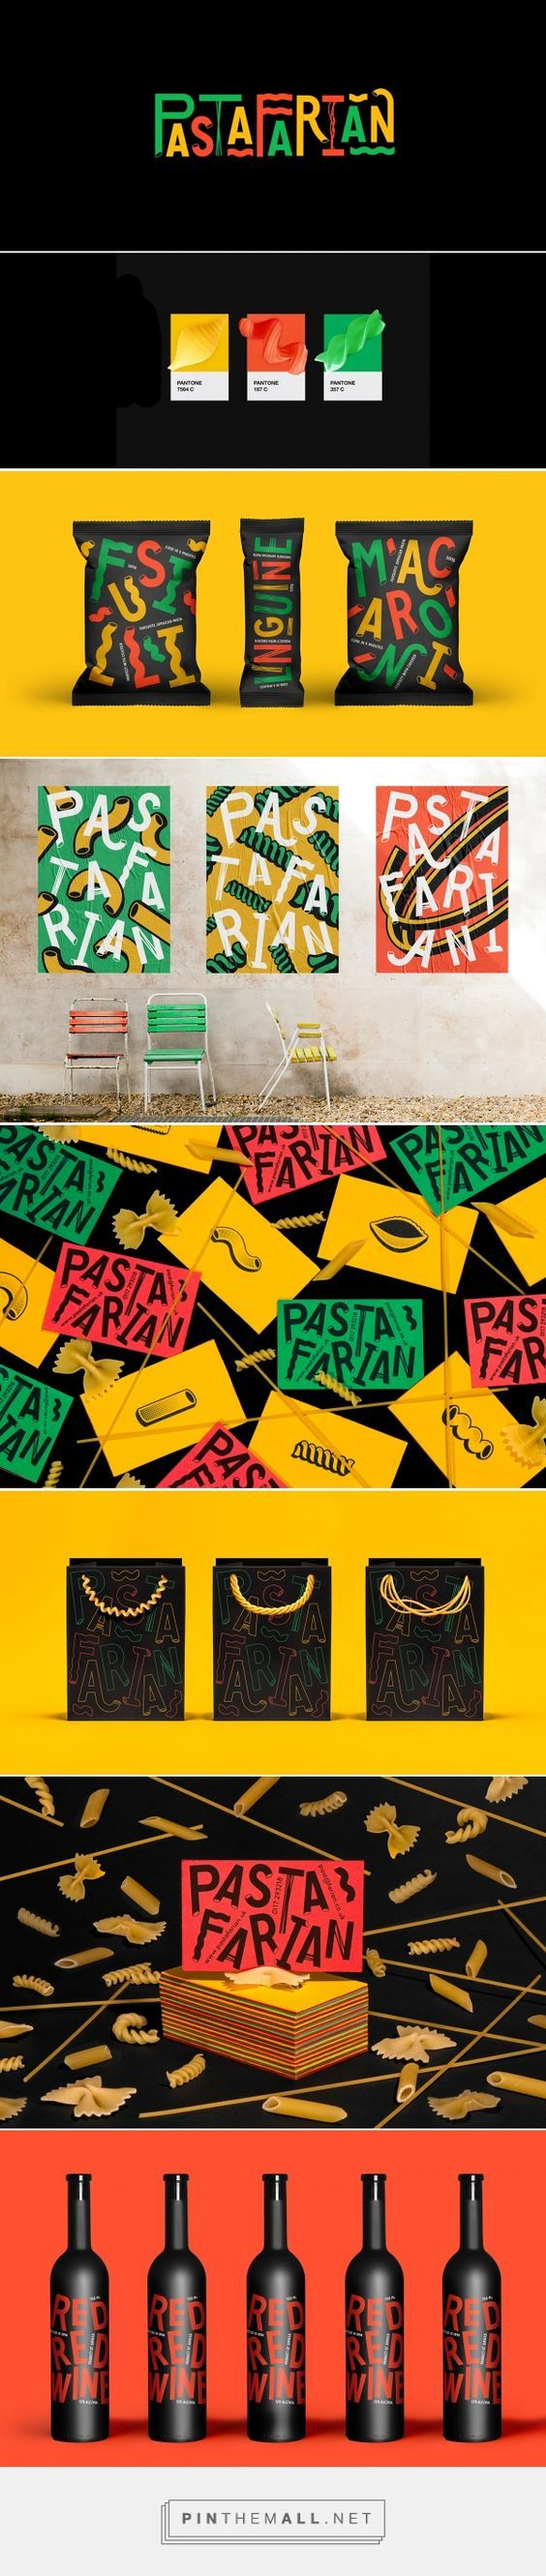 Pastafarian Pasta Branding and Packaging by Ryan Panchal   Fivestar Branding Agency – Design and Branding Agency & Curated Inspiration Gallery